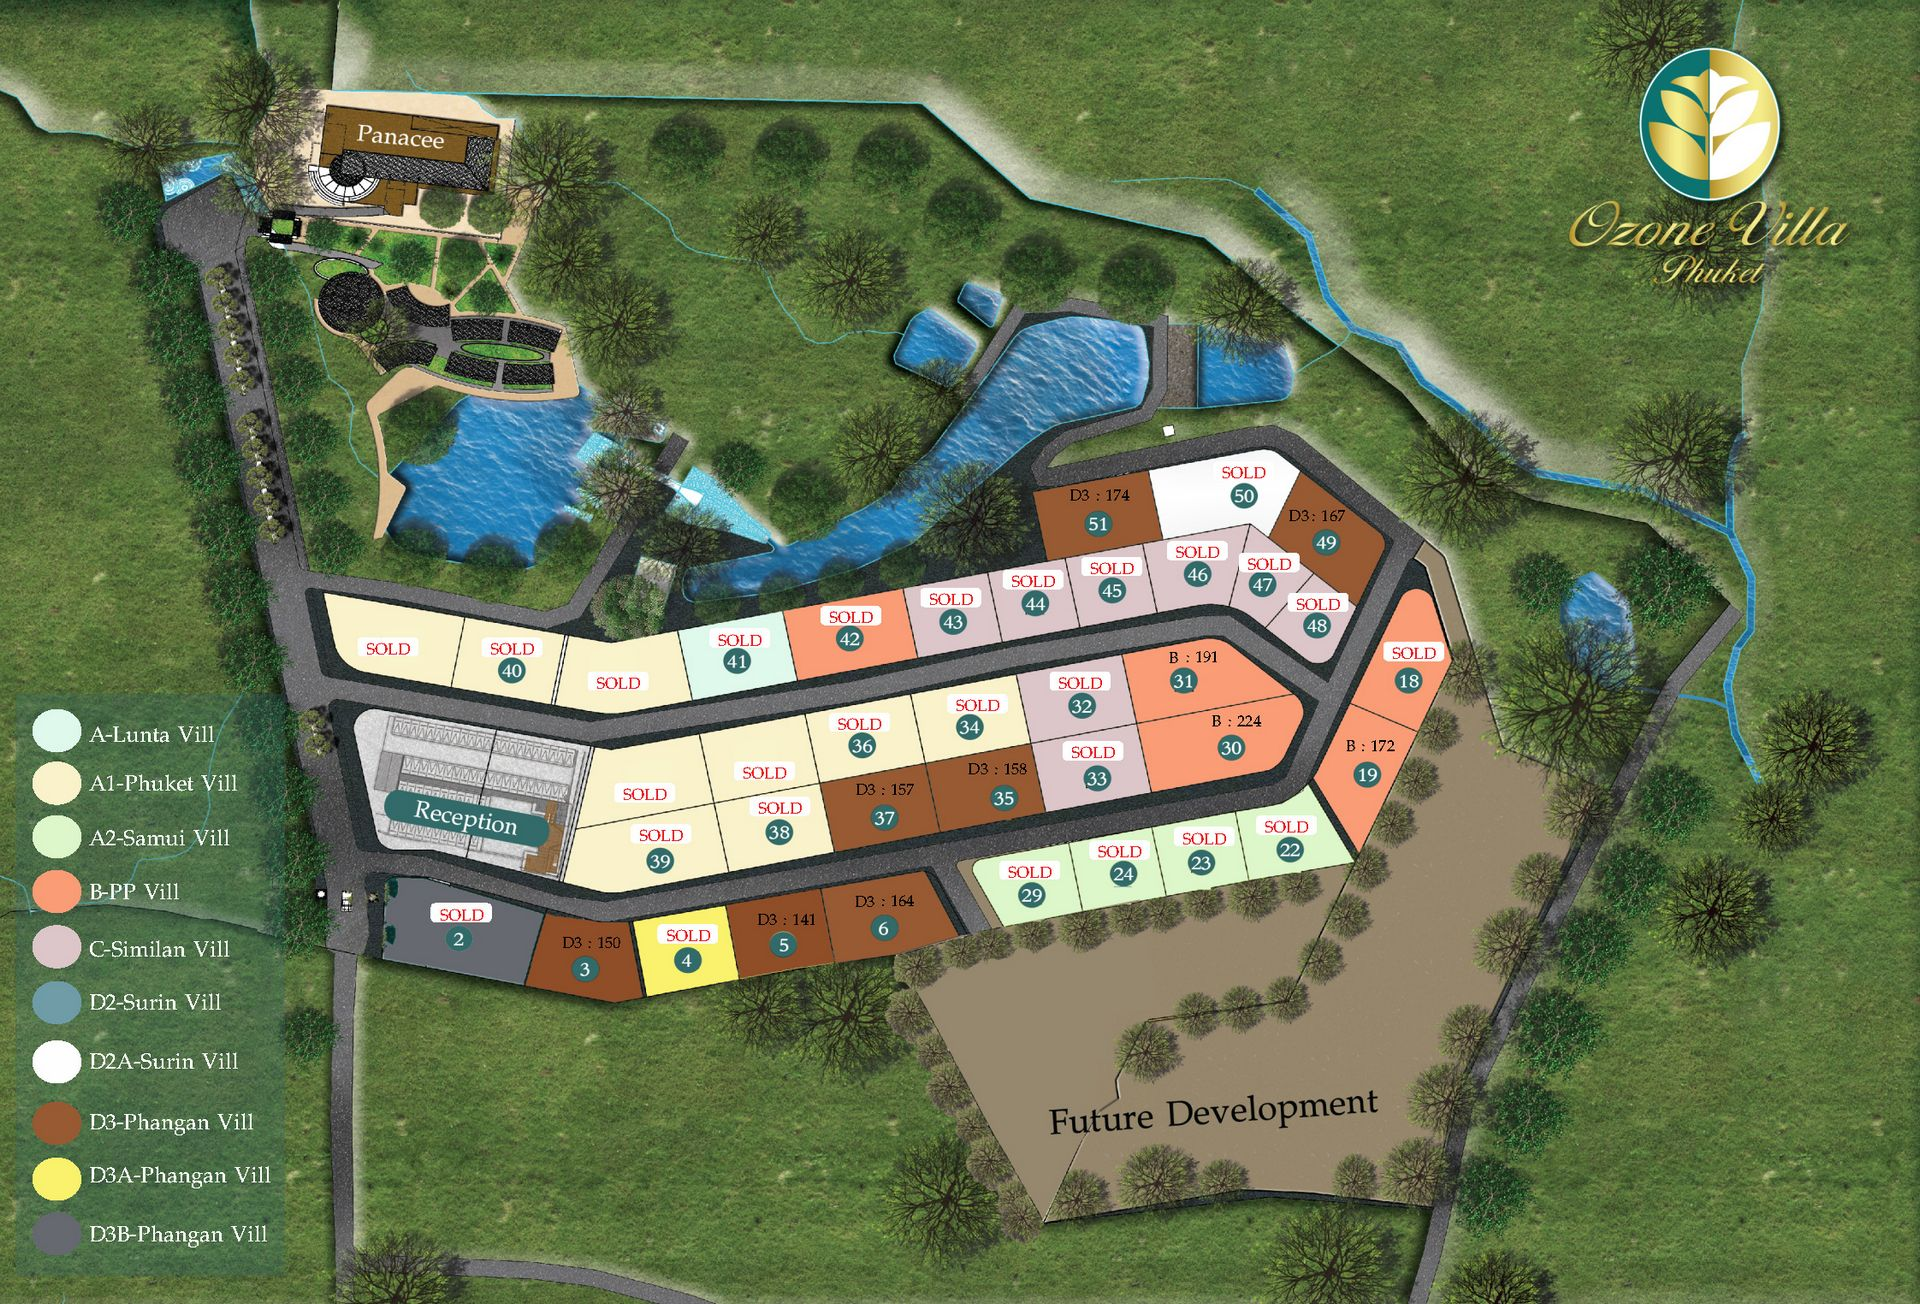 Ozone Villa PHUKET -  Master Plan and available units for sale